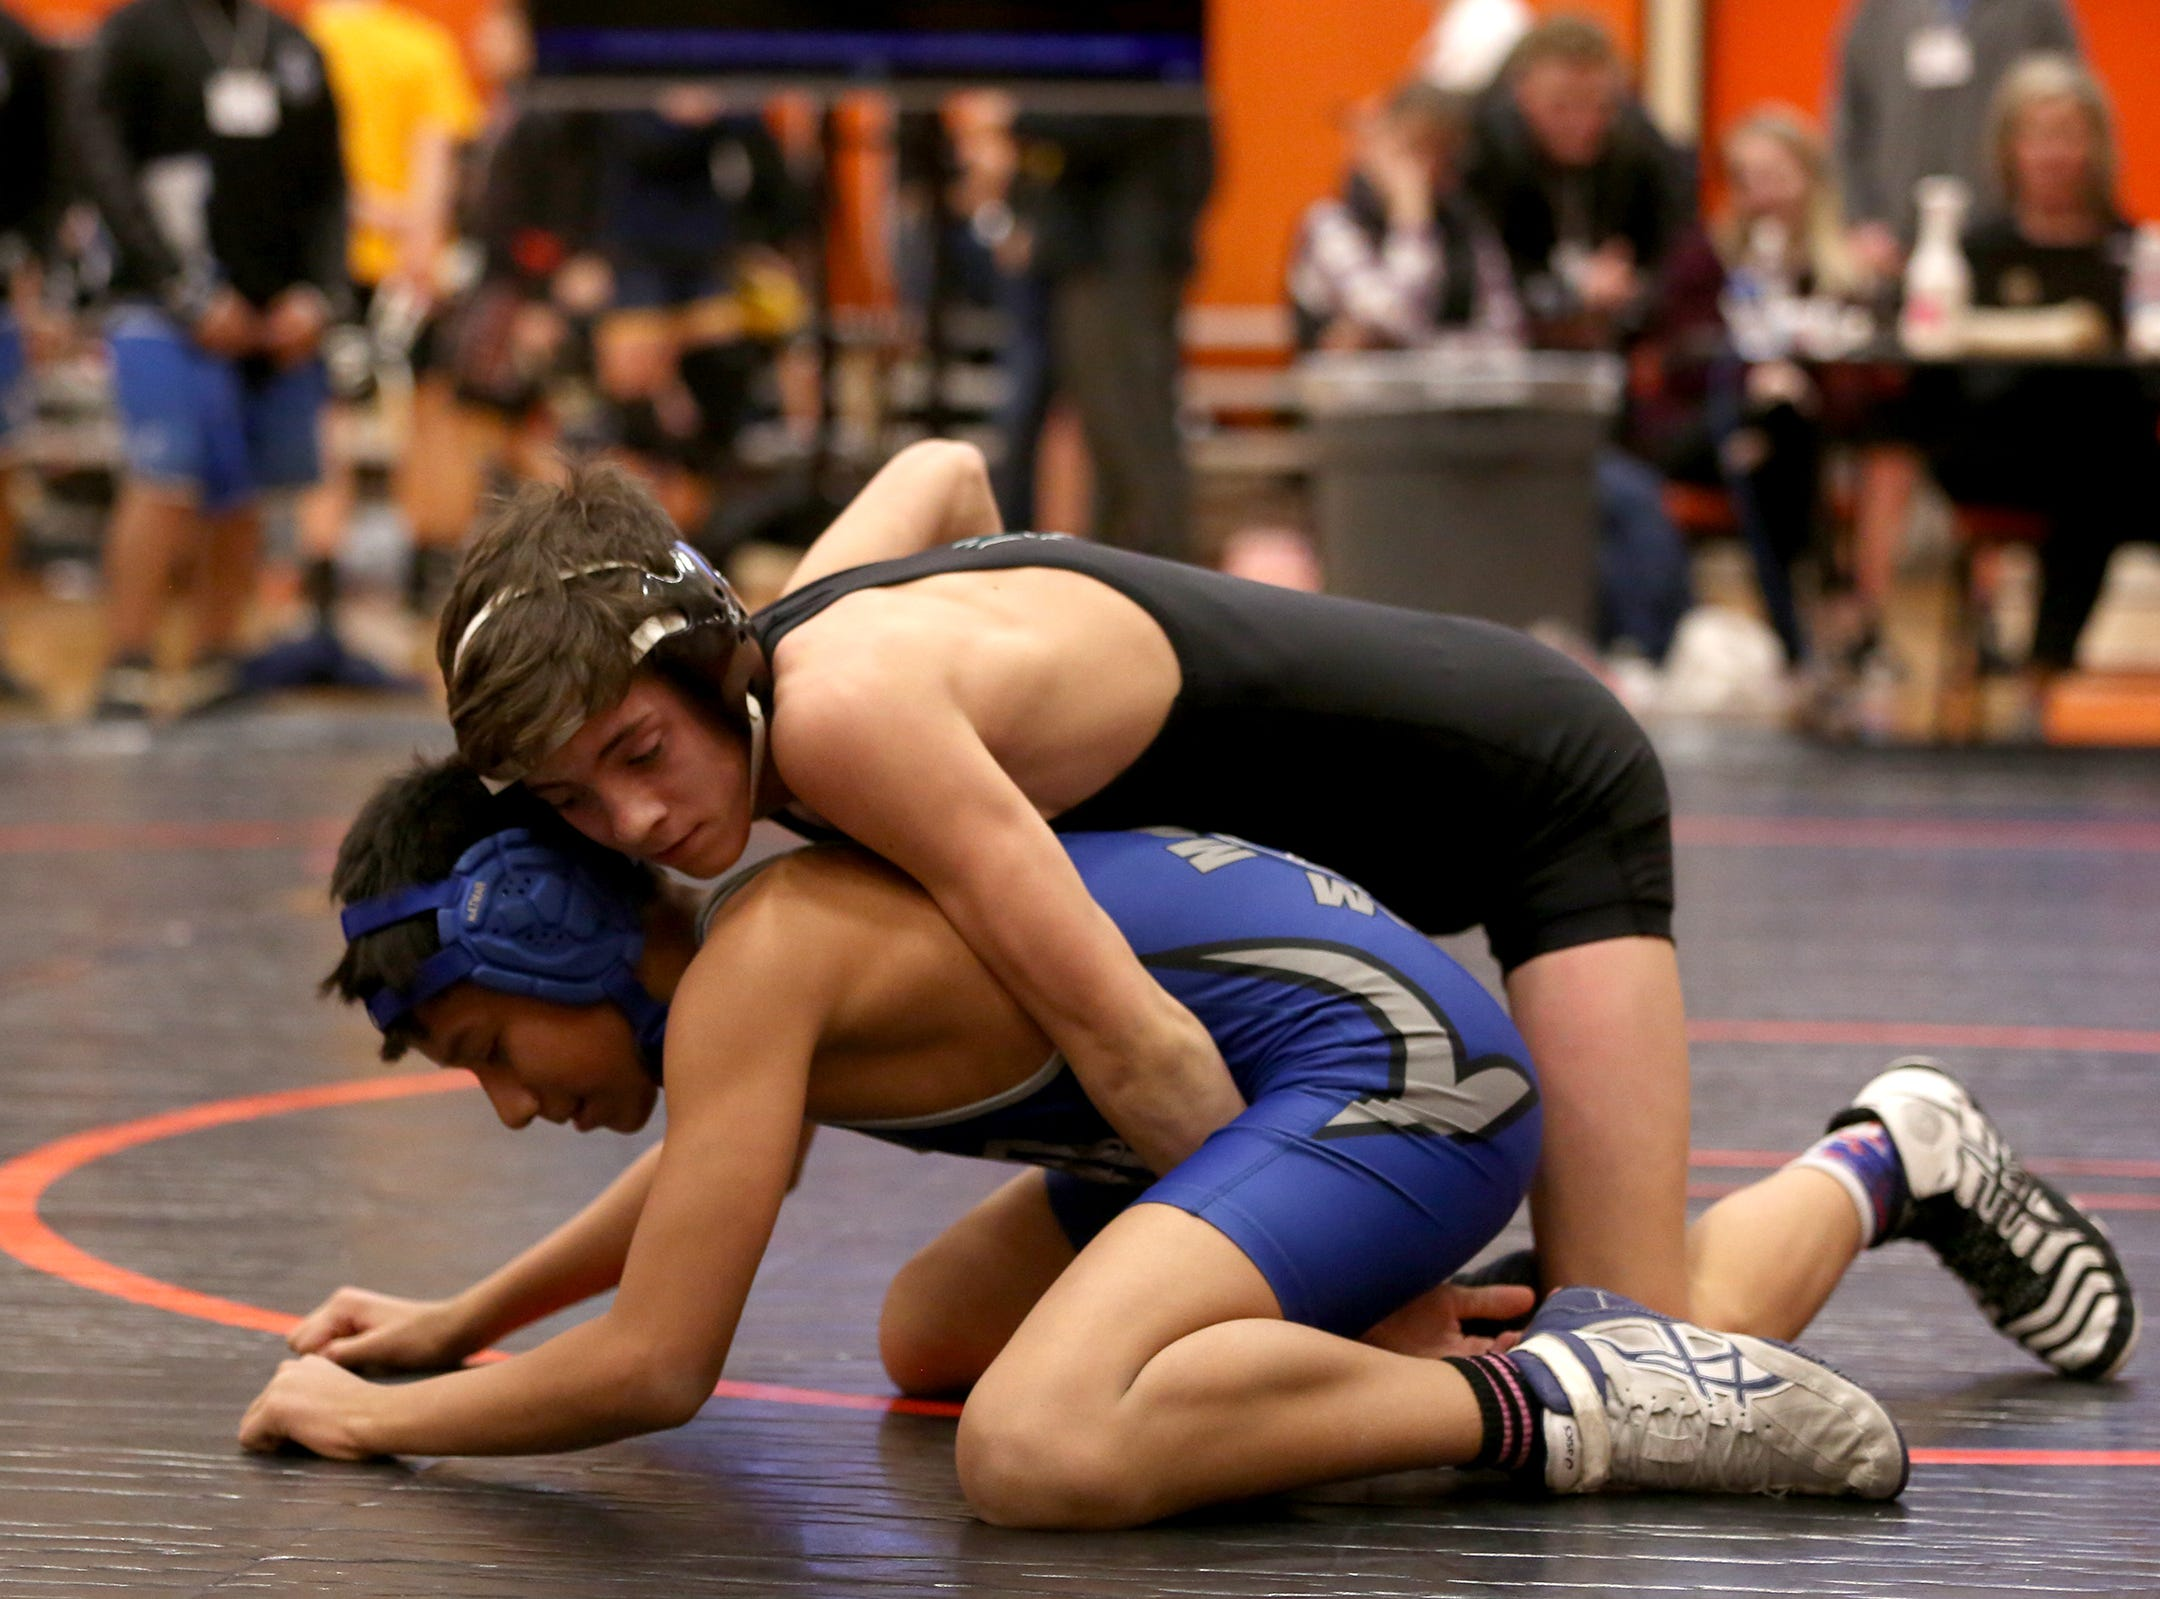 West Salem's Brett McClung holds down McNary's Damien Hernandez in the 106 pound weight class during the Mountain Valley Conference district wrestling tournament at Sprague High School in Salem on Friday, Feb. 15, 2019.